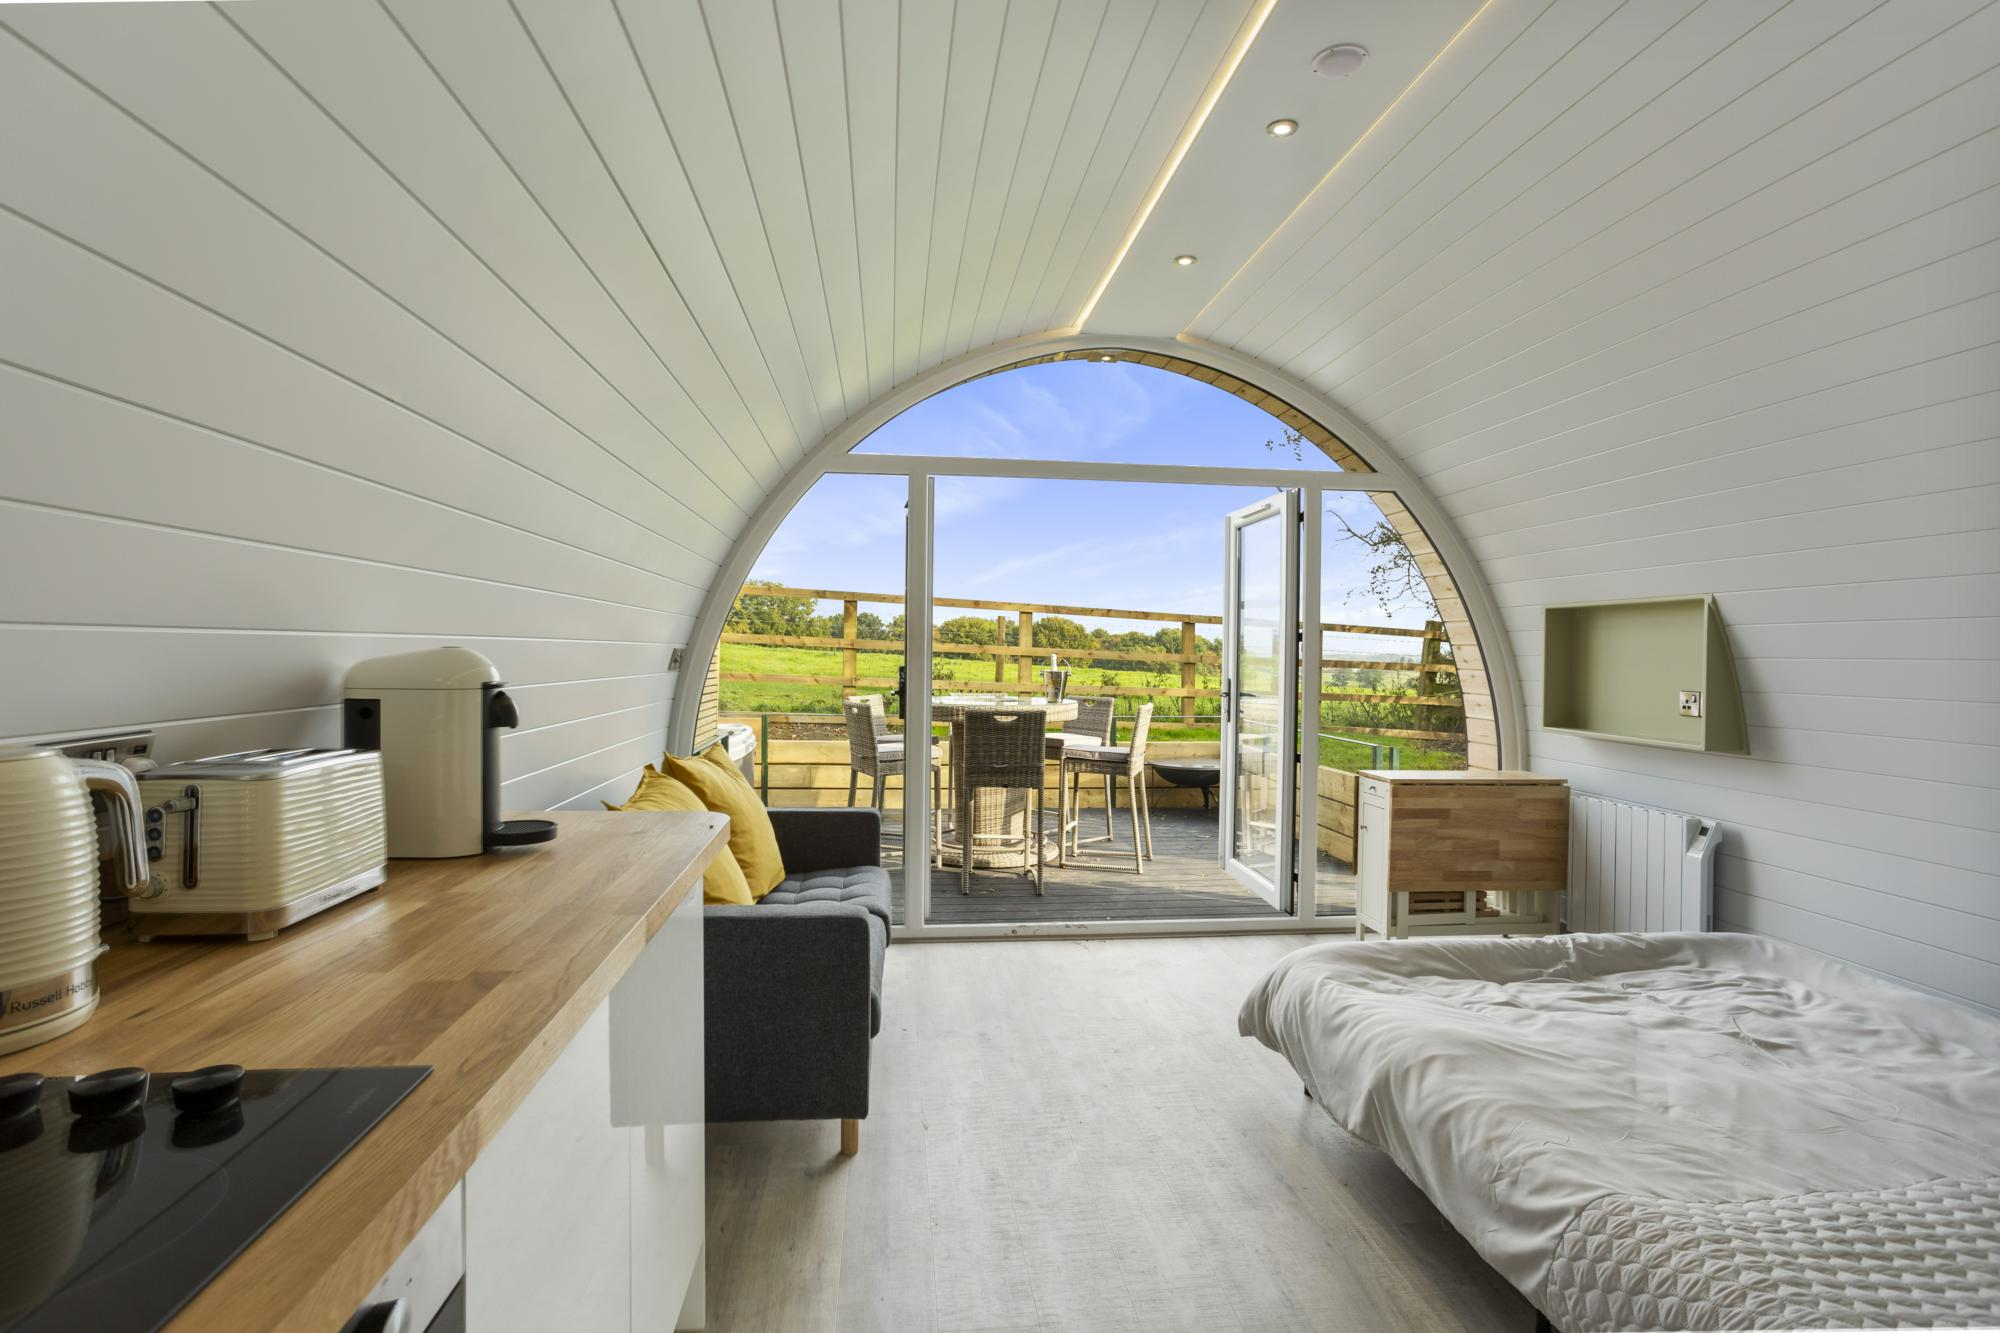 Glamping in East Midlands holidays at Cool Places